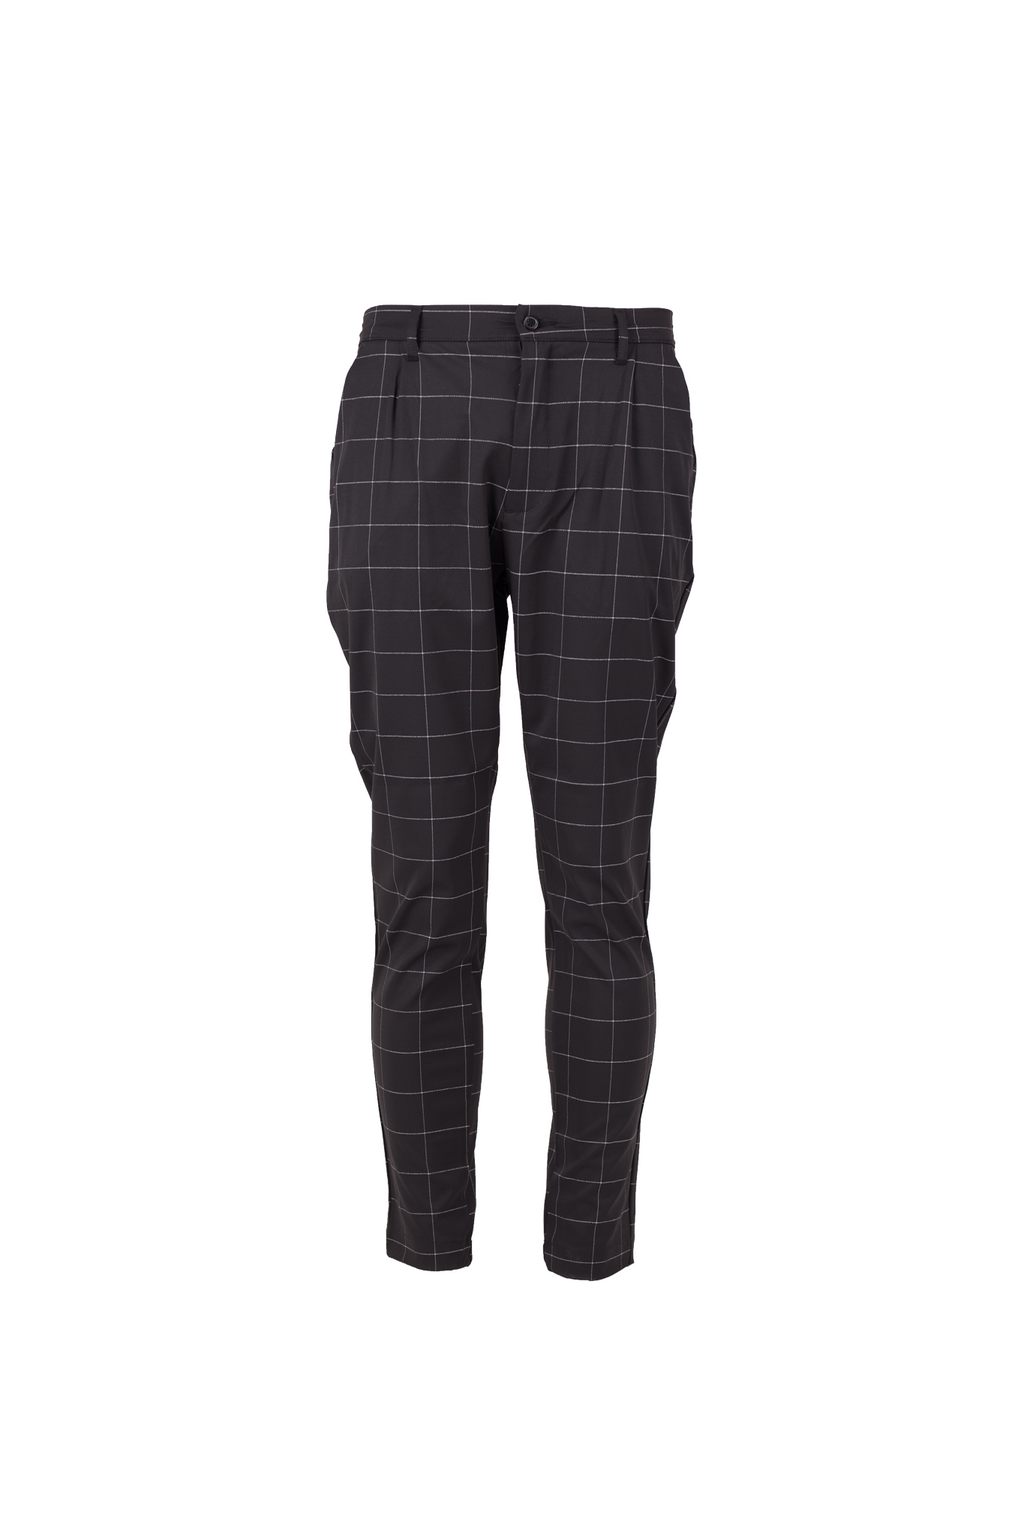 Klaus - Window Pants - Black - Audace Copenhagen